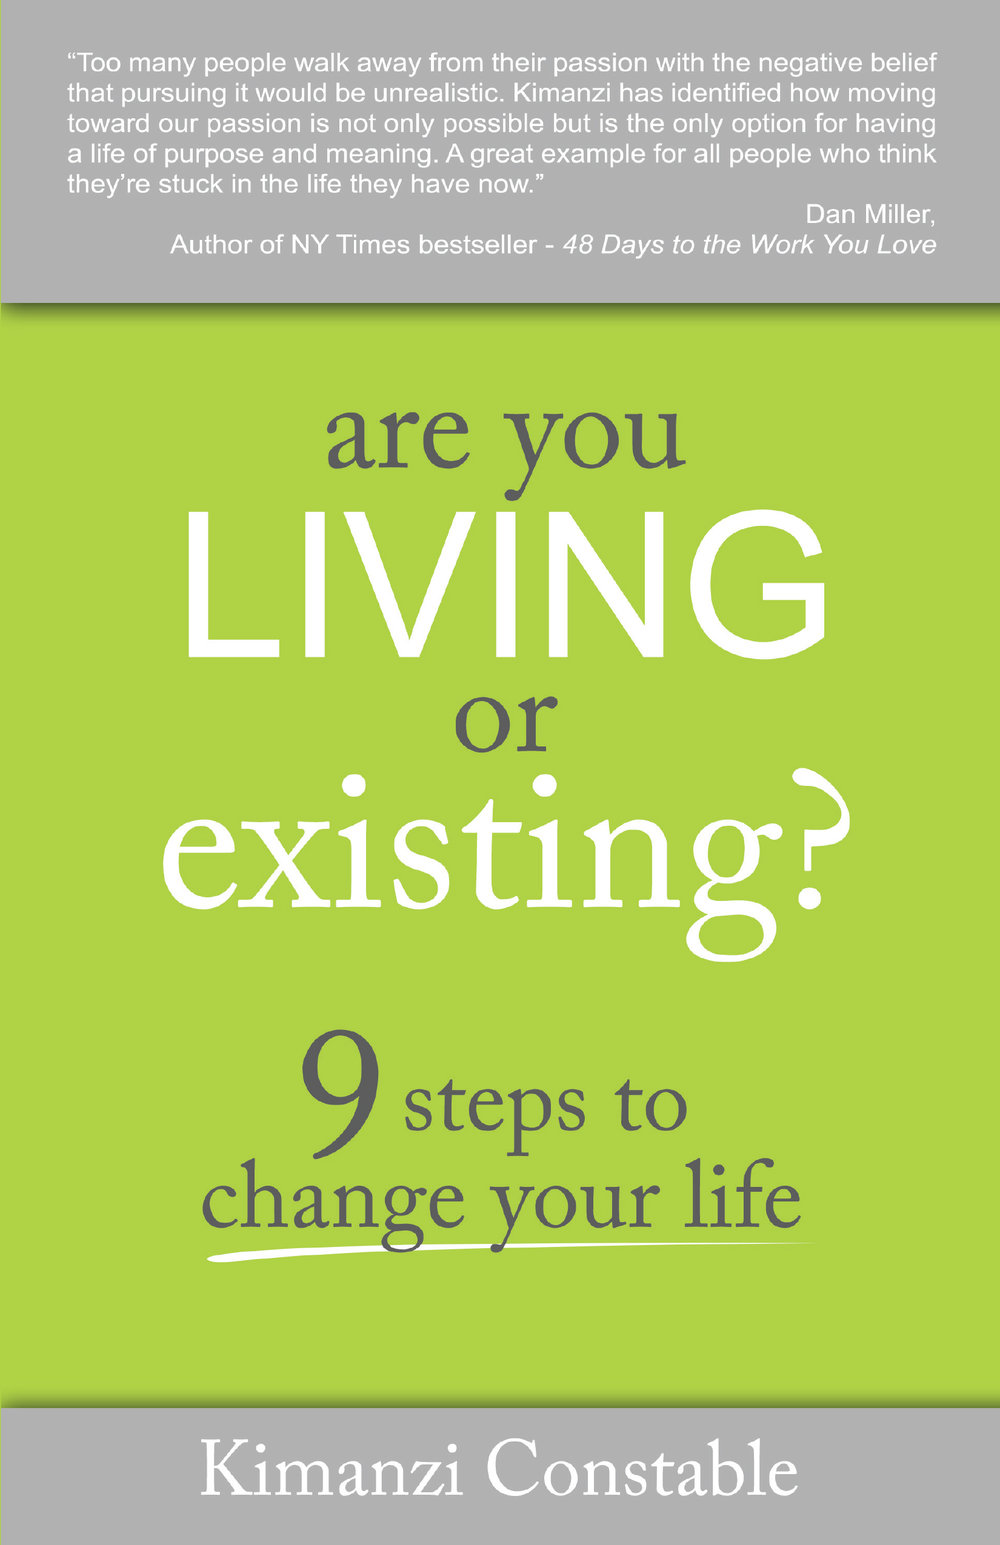 Are You Living or Existing - Kimanzi Constable